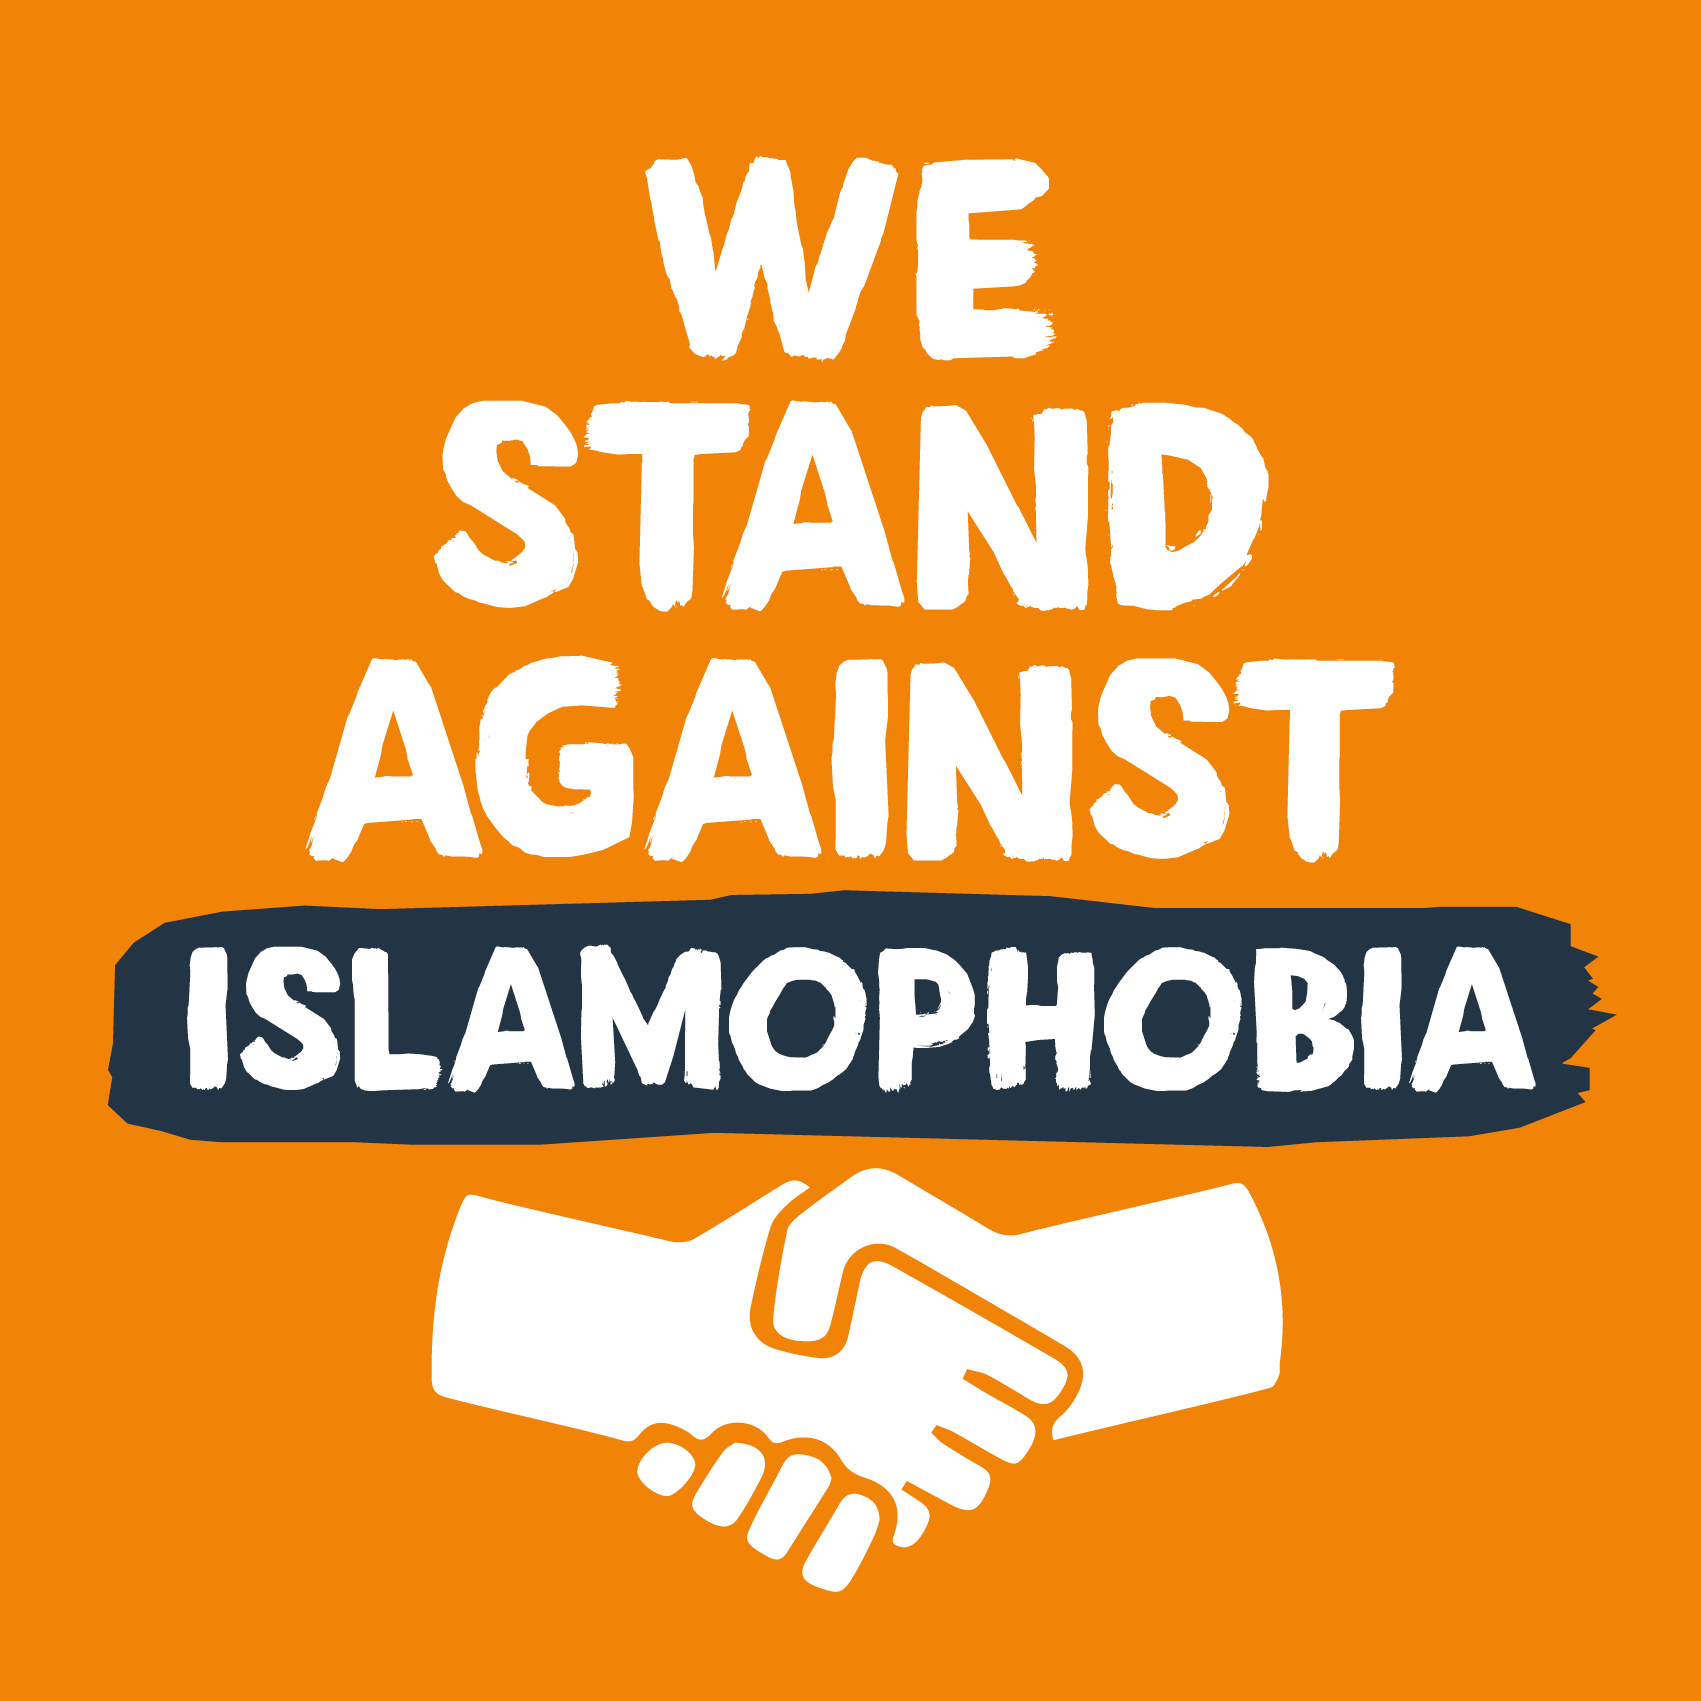 We Stand Against Islamophobia Stalls